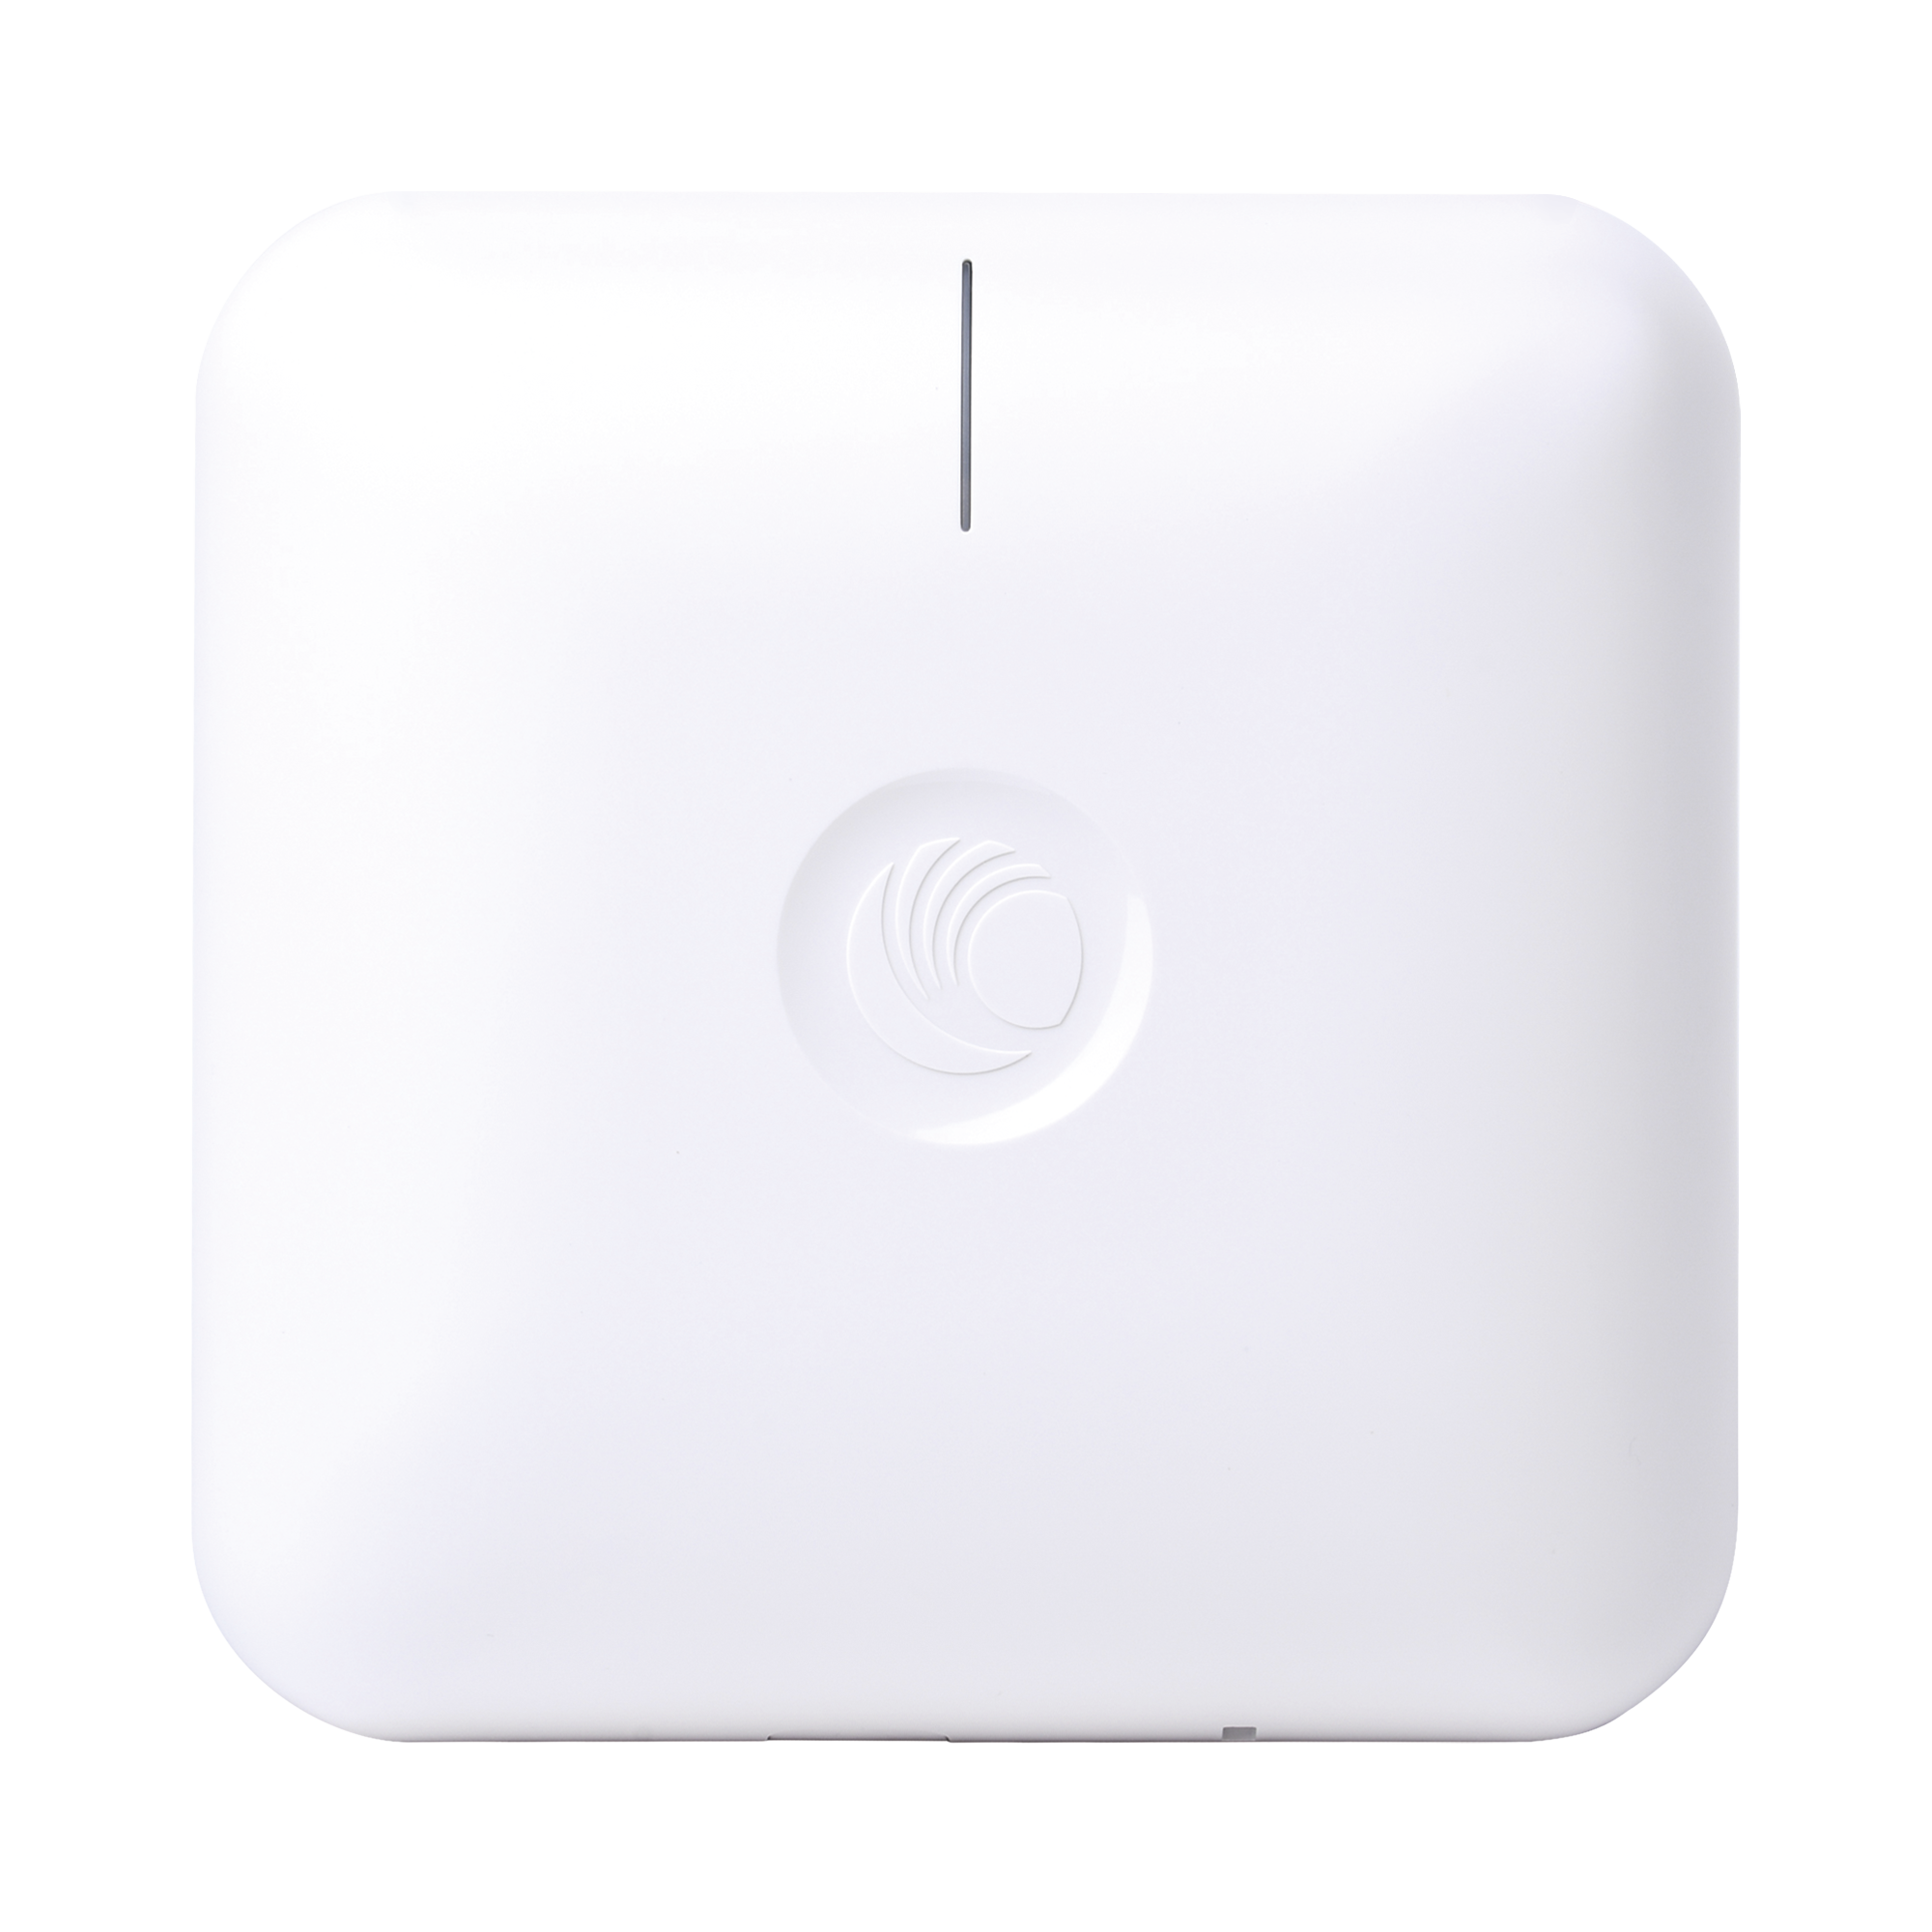 Access Point WiFi cnPilot e410 Indoor,  Doble Banda, Wave 2, MU-MIMO 2X2, antena Beamforming Omnidireccional, hasta 256 clientes